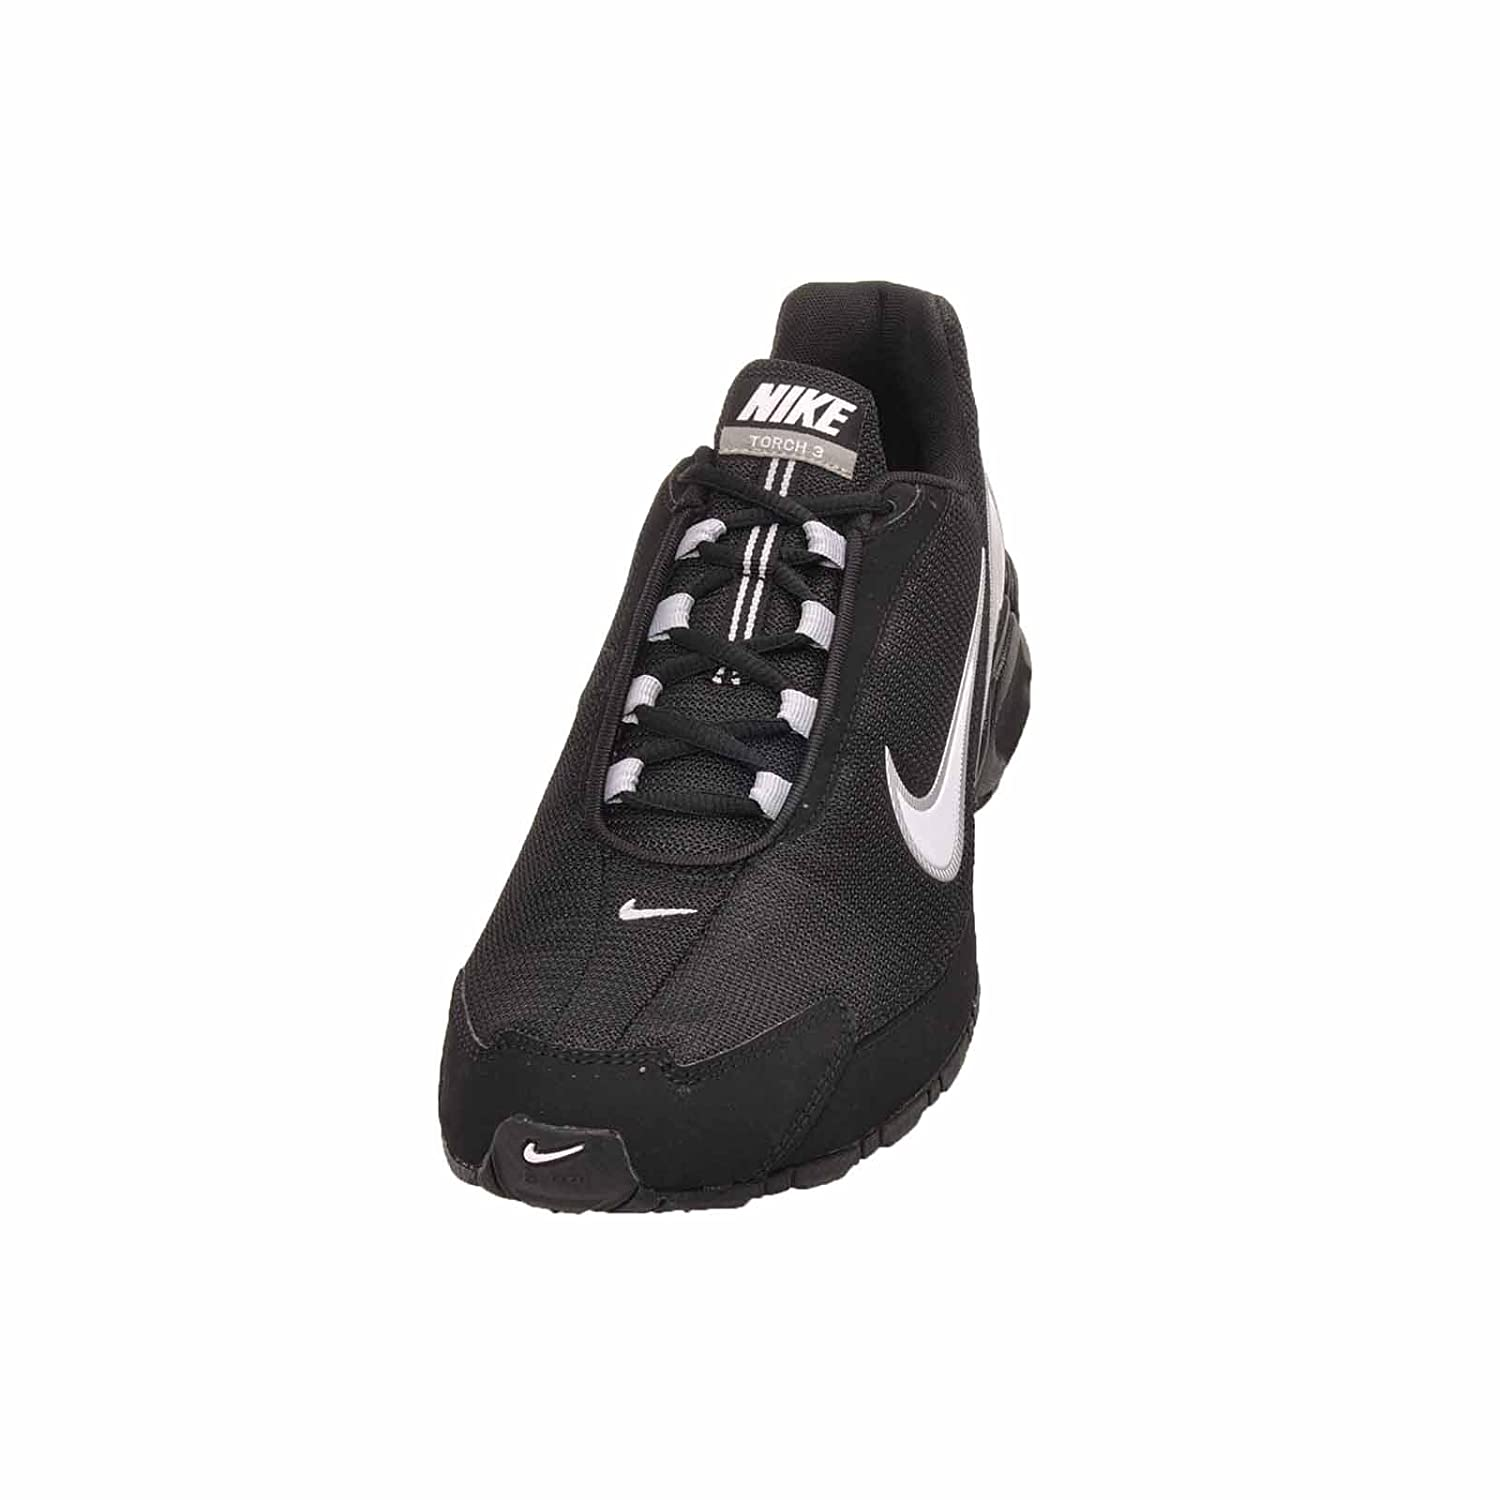 online store 9bb3f 4f050 Nike Air Max Torch 3, Chaussures de Running Compétition Homme  Amazon.fr   Chaussures et Sacs